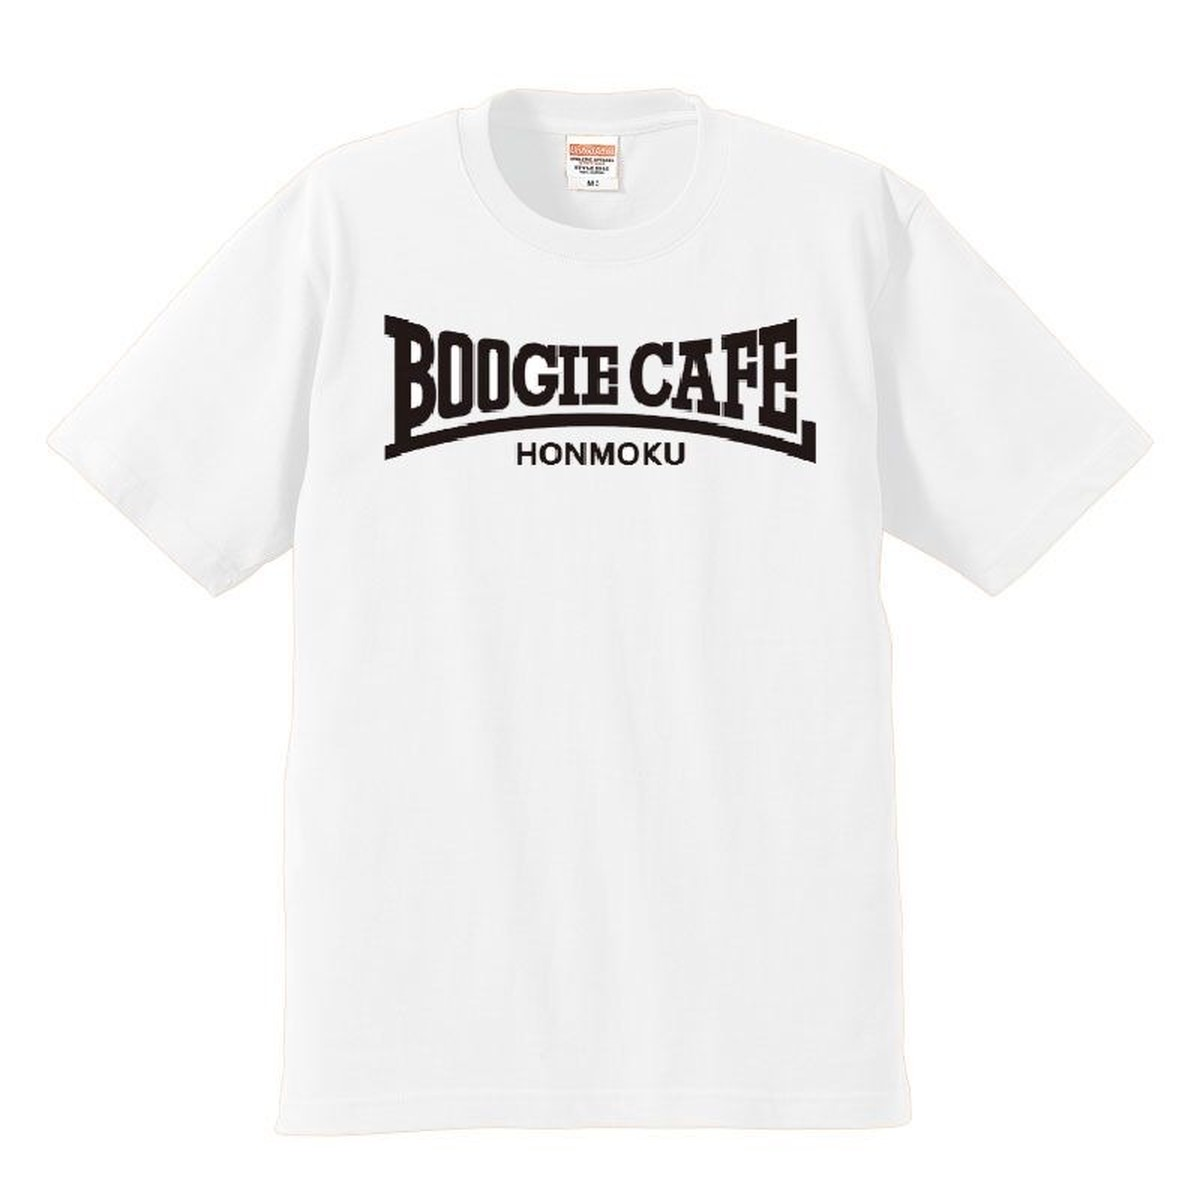 Boogie Cafe Honmoku T Shirt White Black